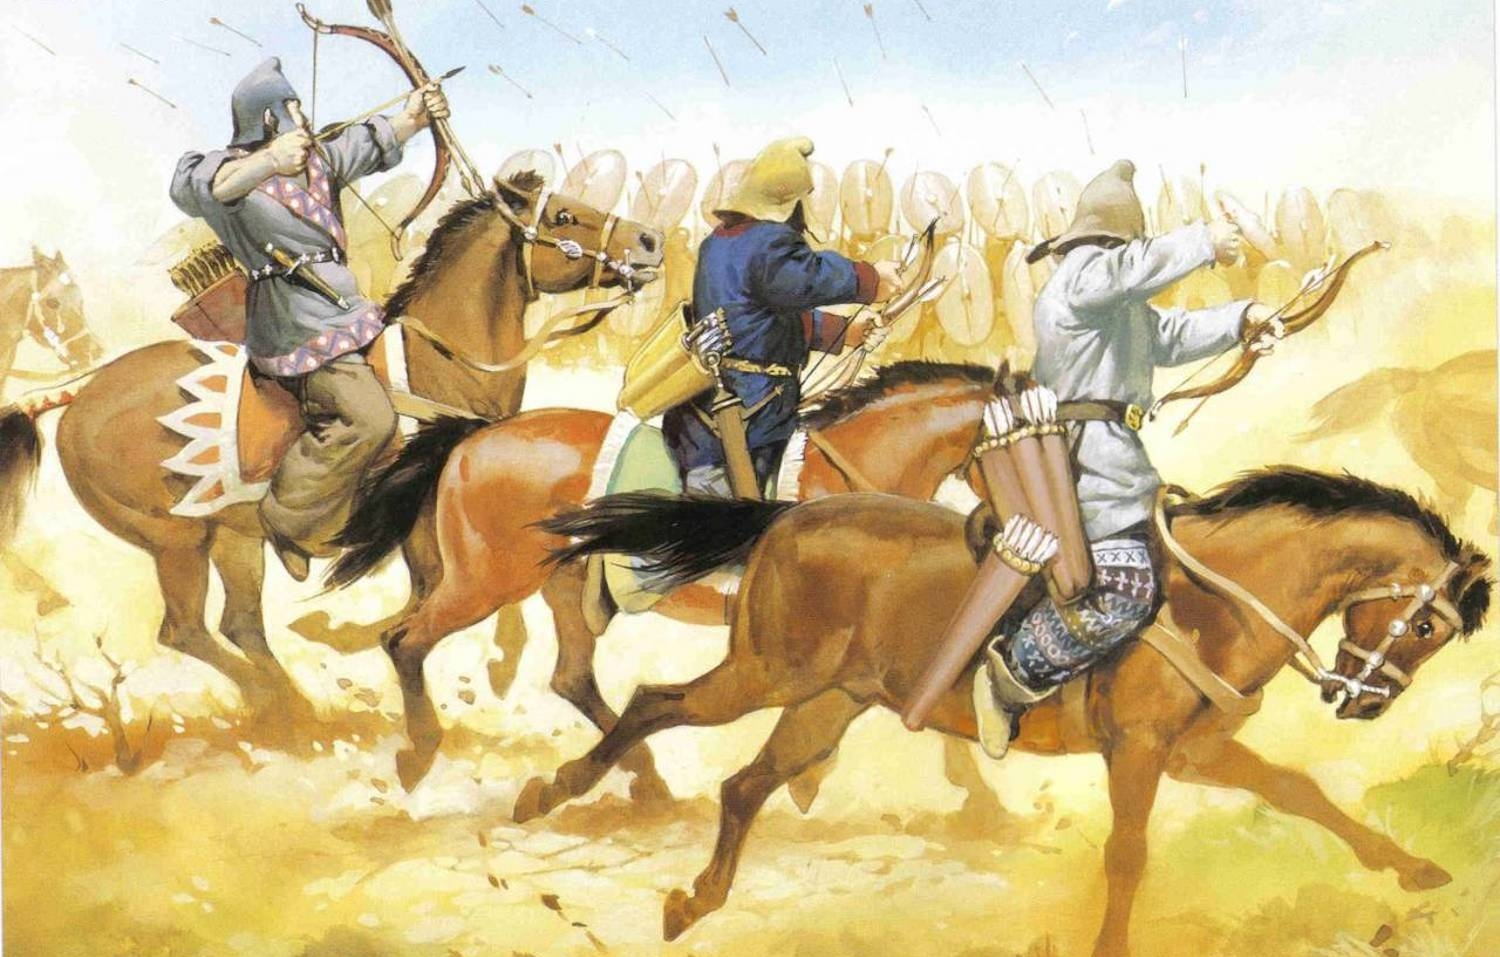 Despite the superior strength and numbers of the Roman army, the Parthians won the day in 53 BC. Their knowledge of the ground and the ability to move quickly gave the Parthians the victory at the battle of Carrhae. Image from    here   .